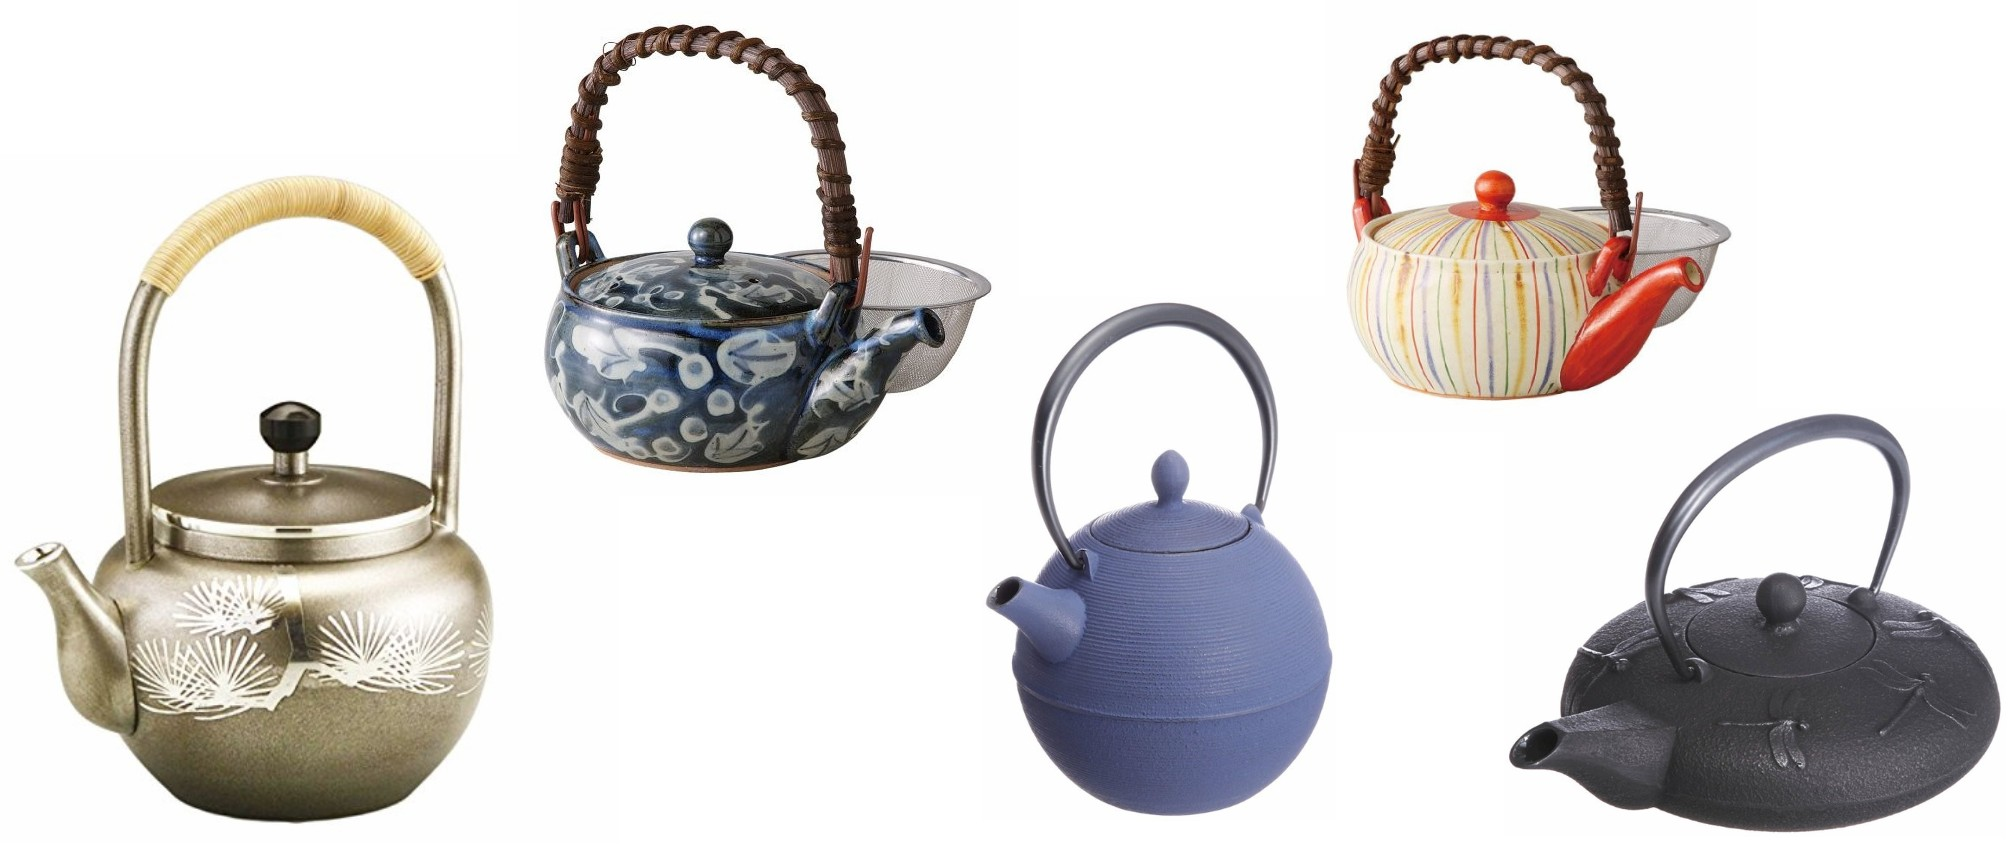 Uwade Kyusu: Japanese Top-handle Teapots